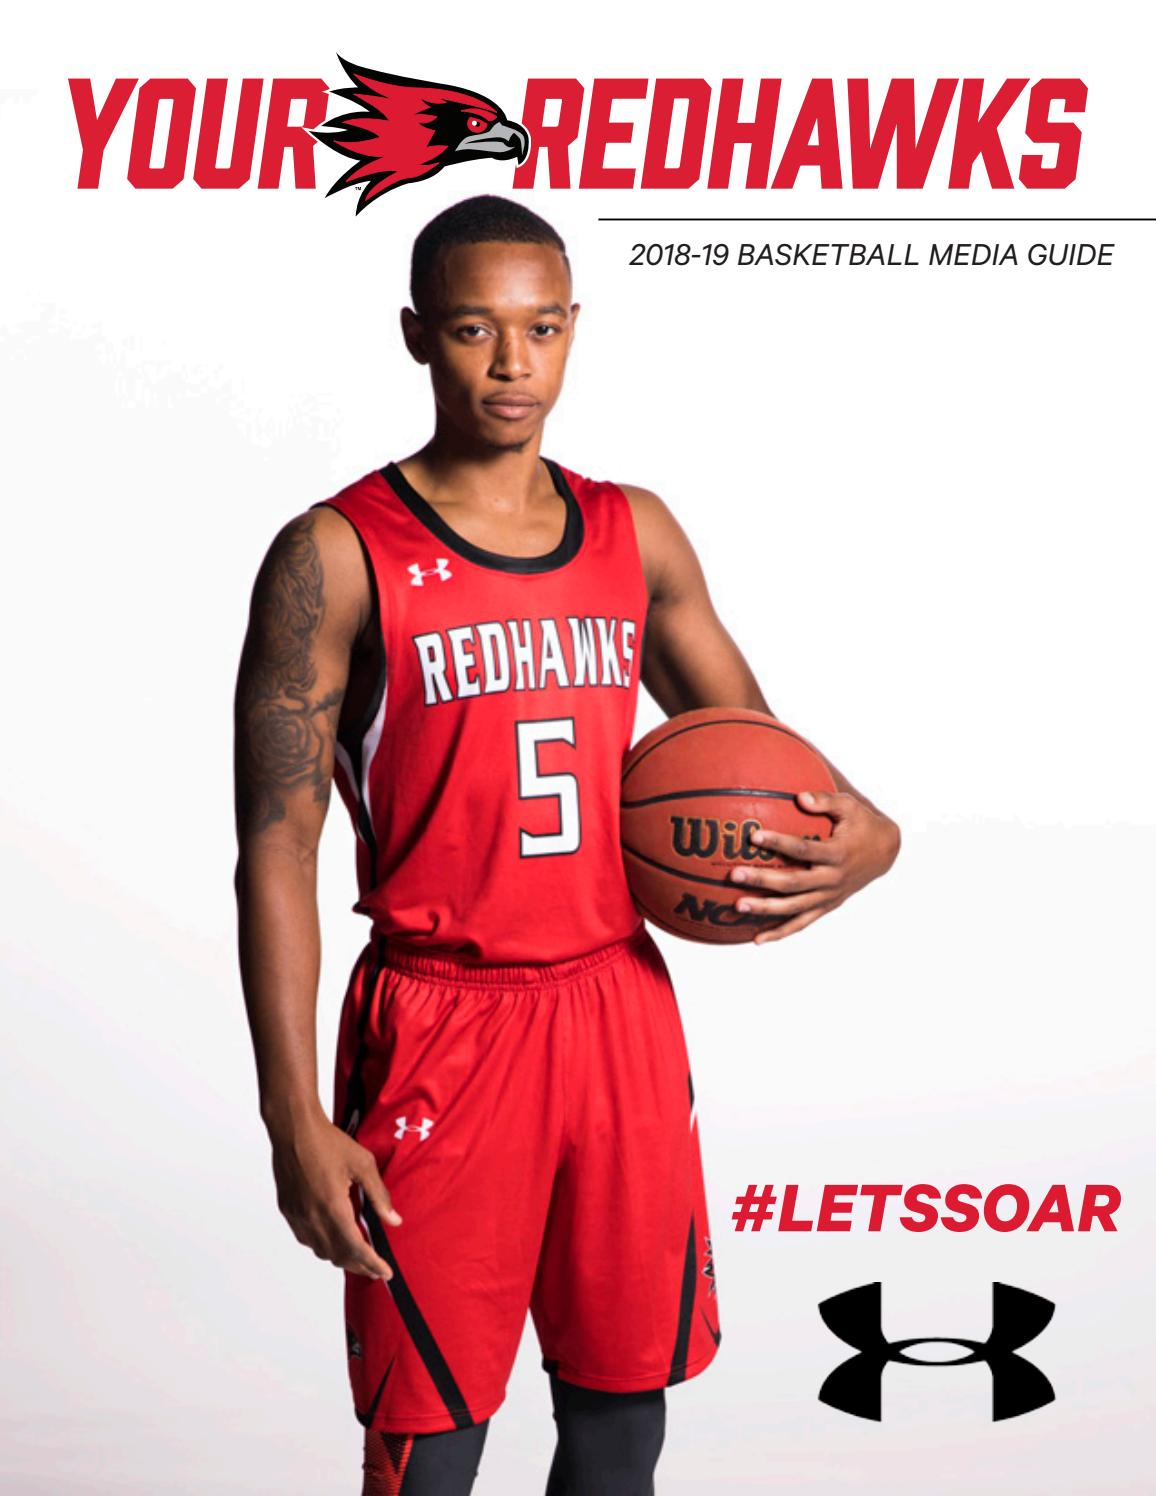 ae0c49bbdd7 2018-19 Southeast Missouri Men s Basketball Guide by Southeast Missouri  Redhawks - issuu